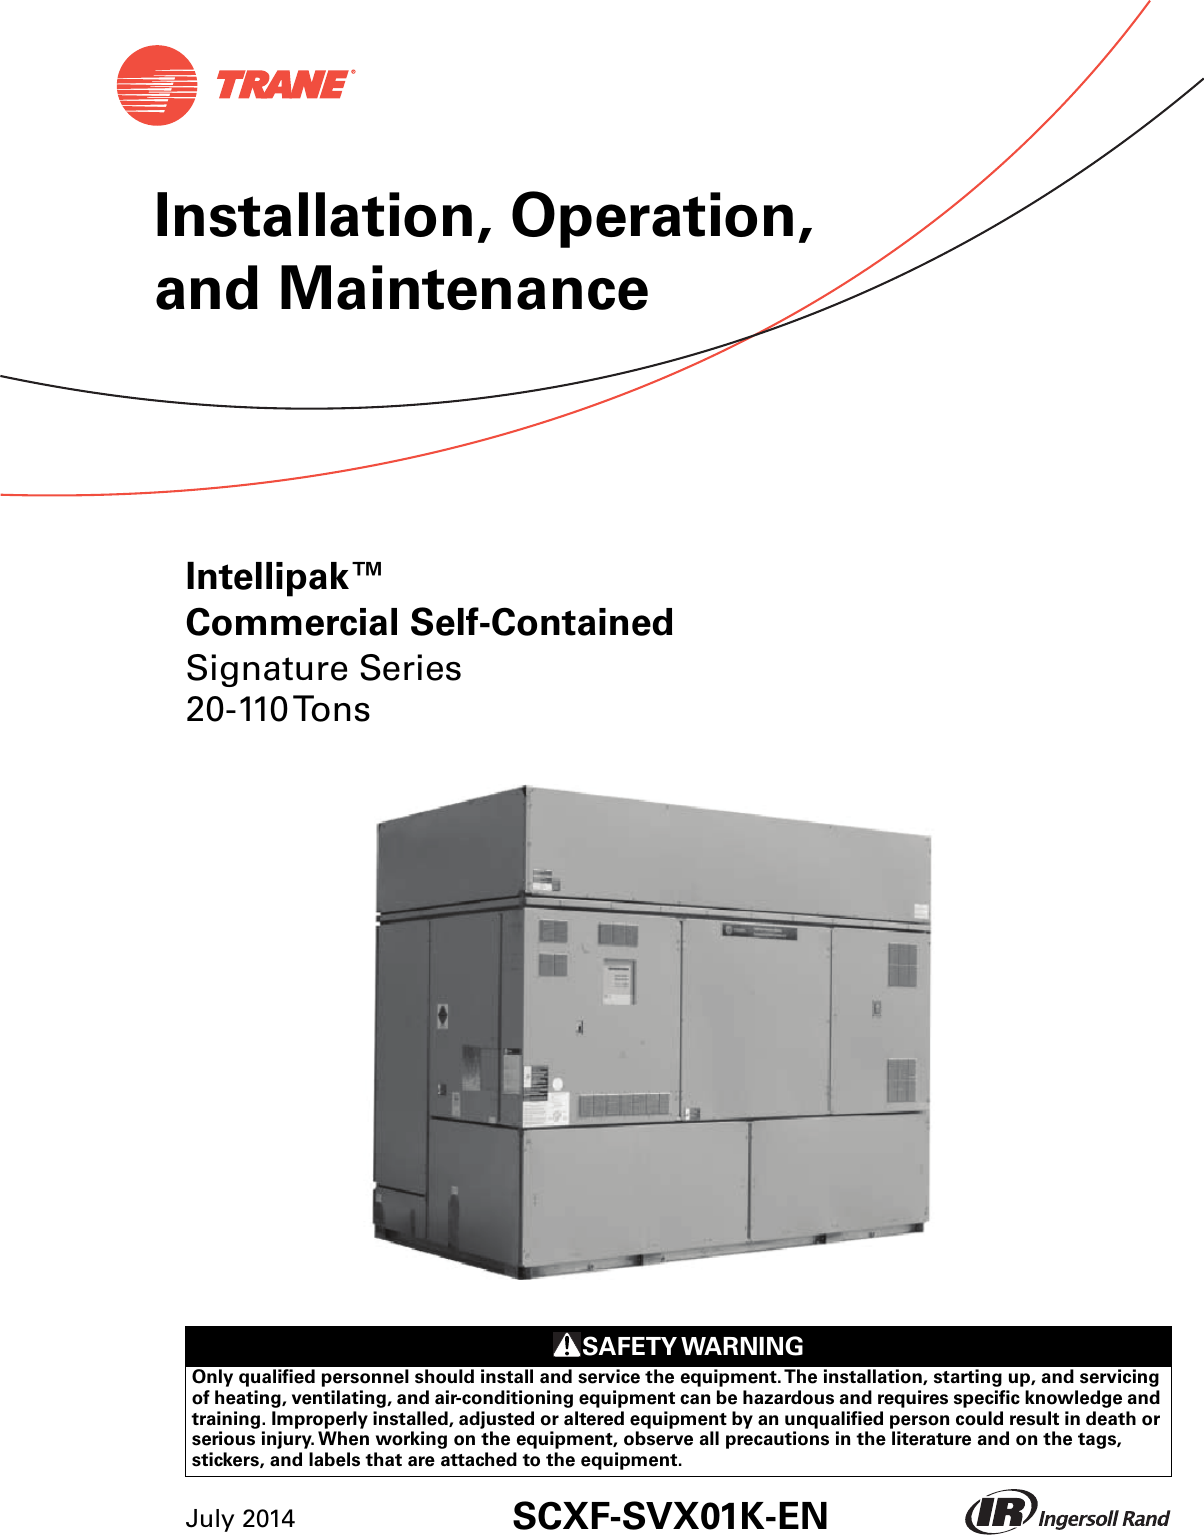 Trane Signature 20 To 110 Tons Installation And Maintenance Manual Hard Start Kit Wiring Diagram Scxf Svx01k En 07 2014